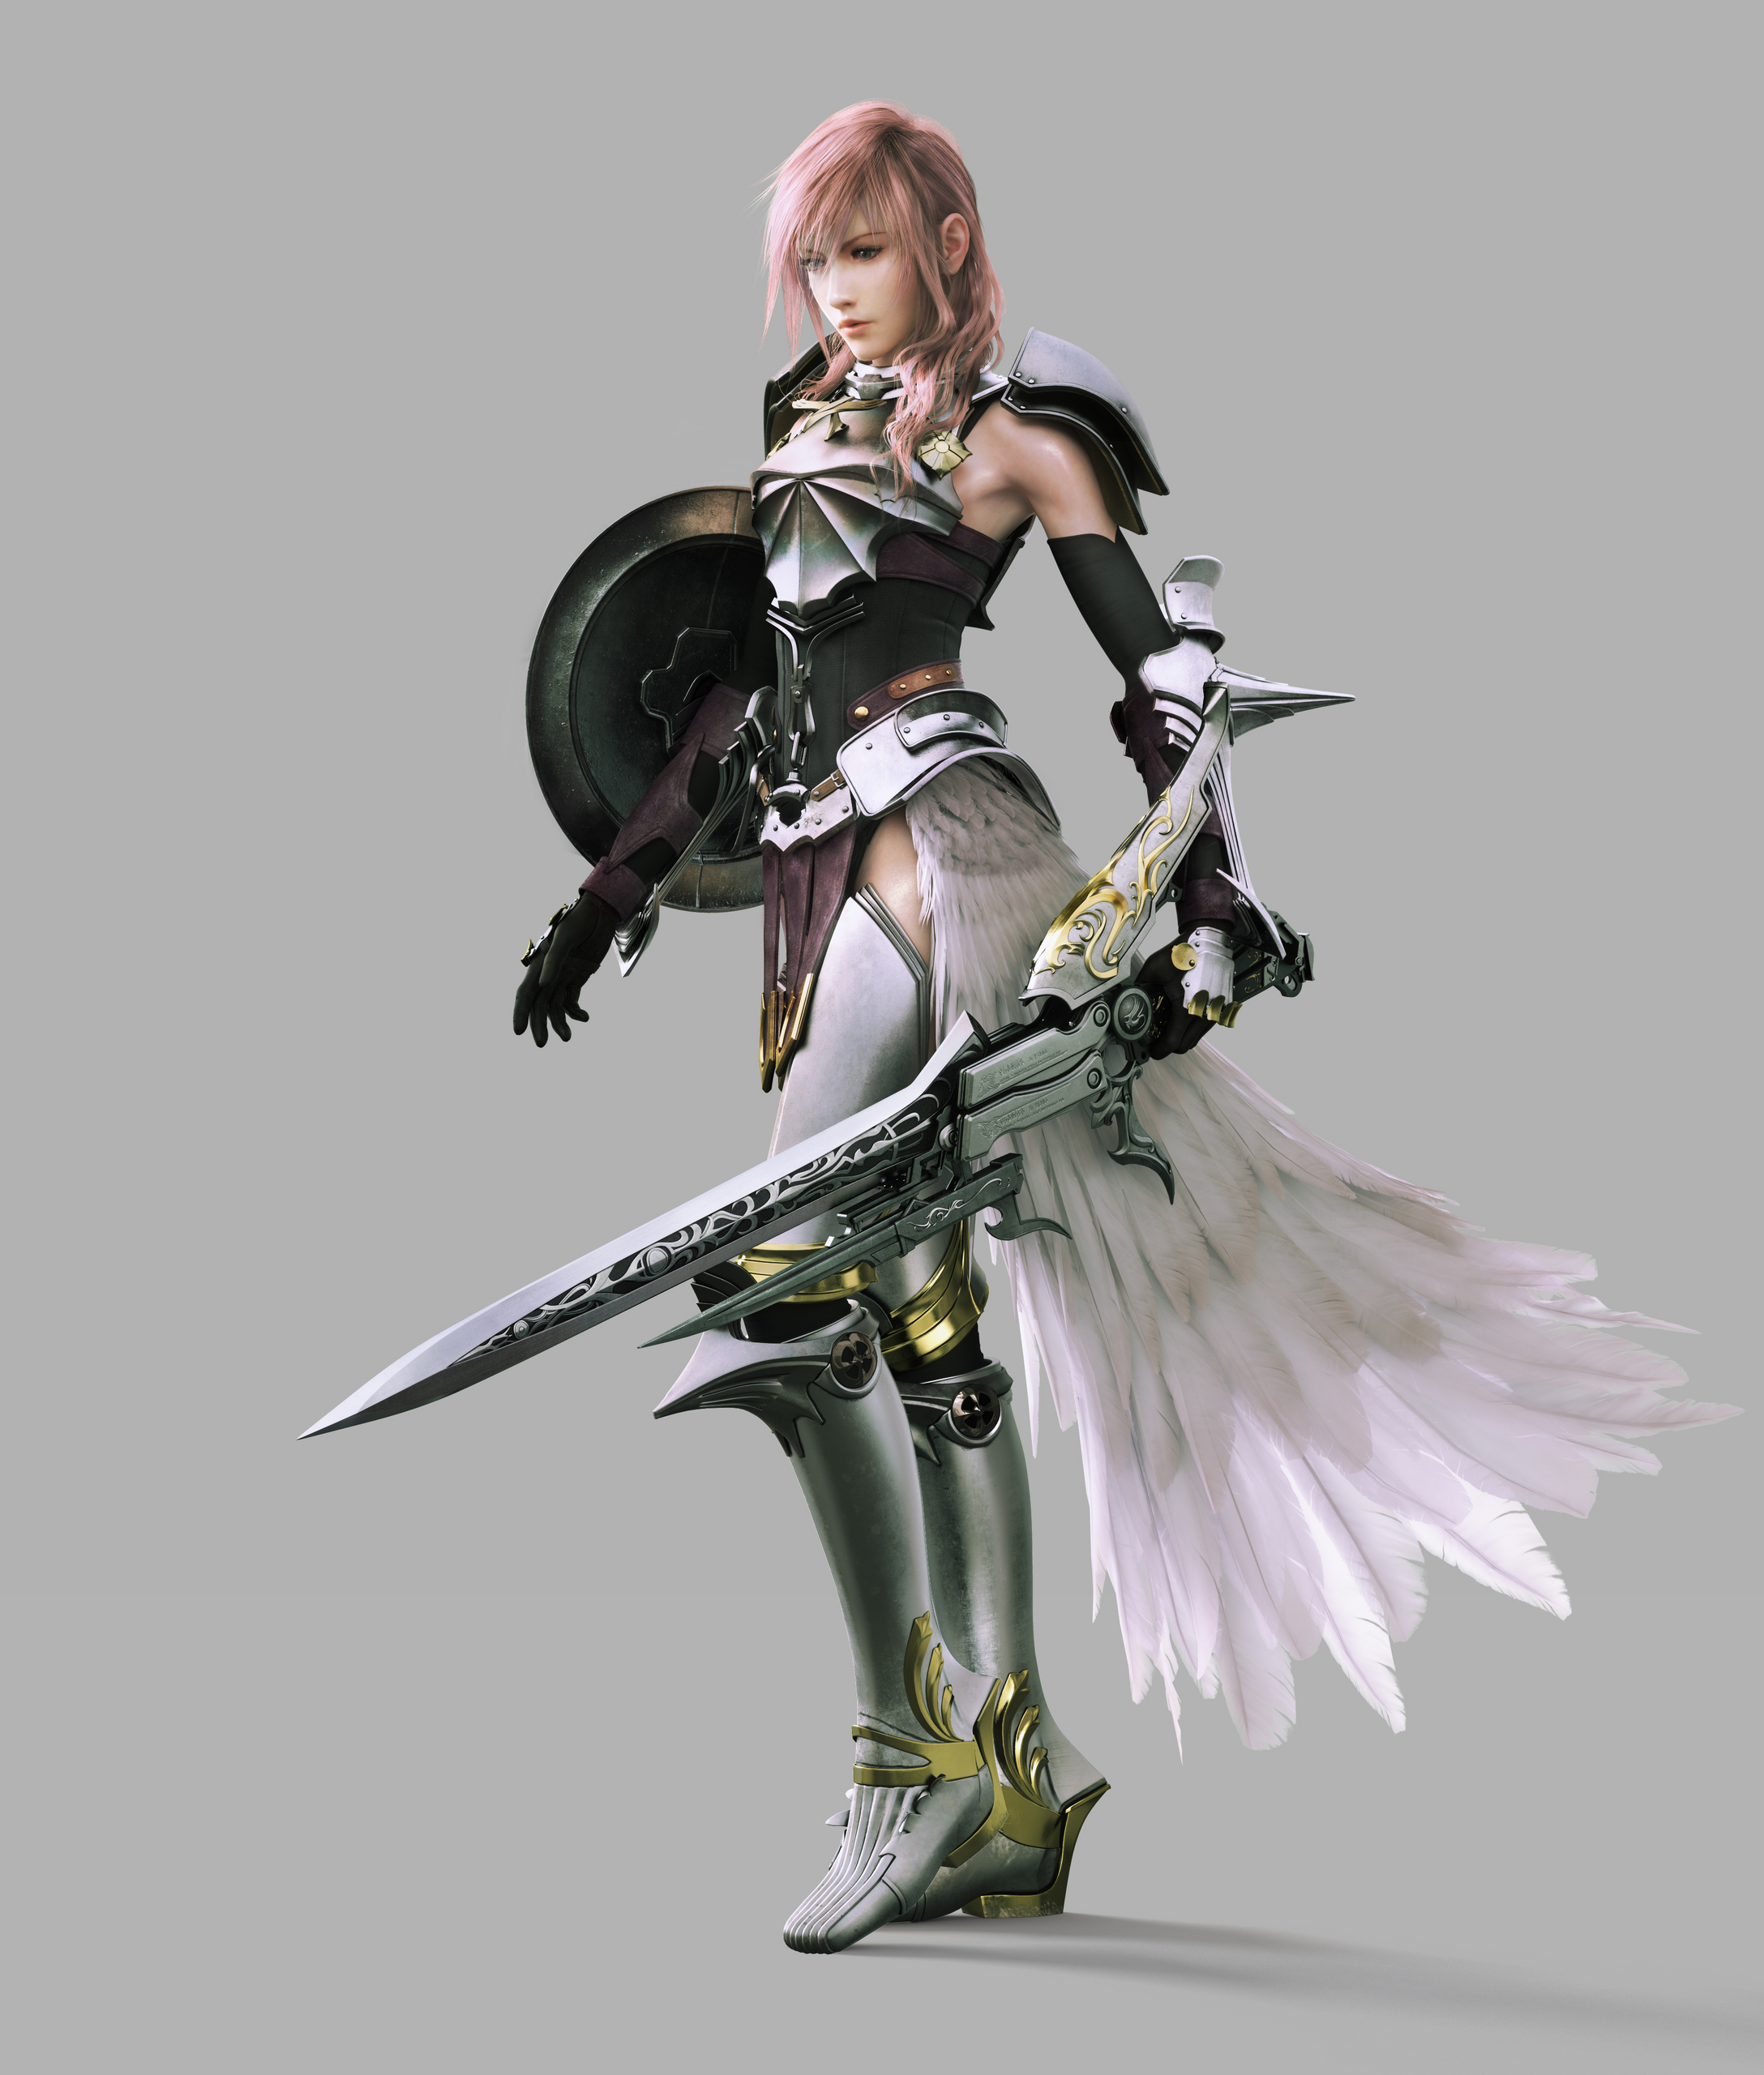 final fantasy xiii-2 images lightning hd wallpaper and background